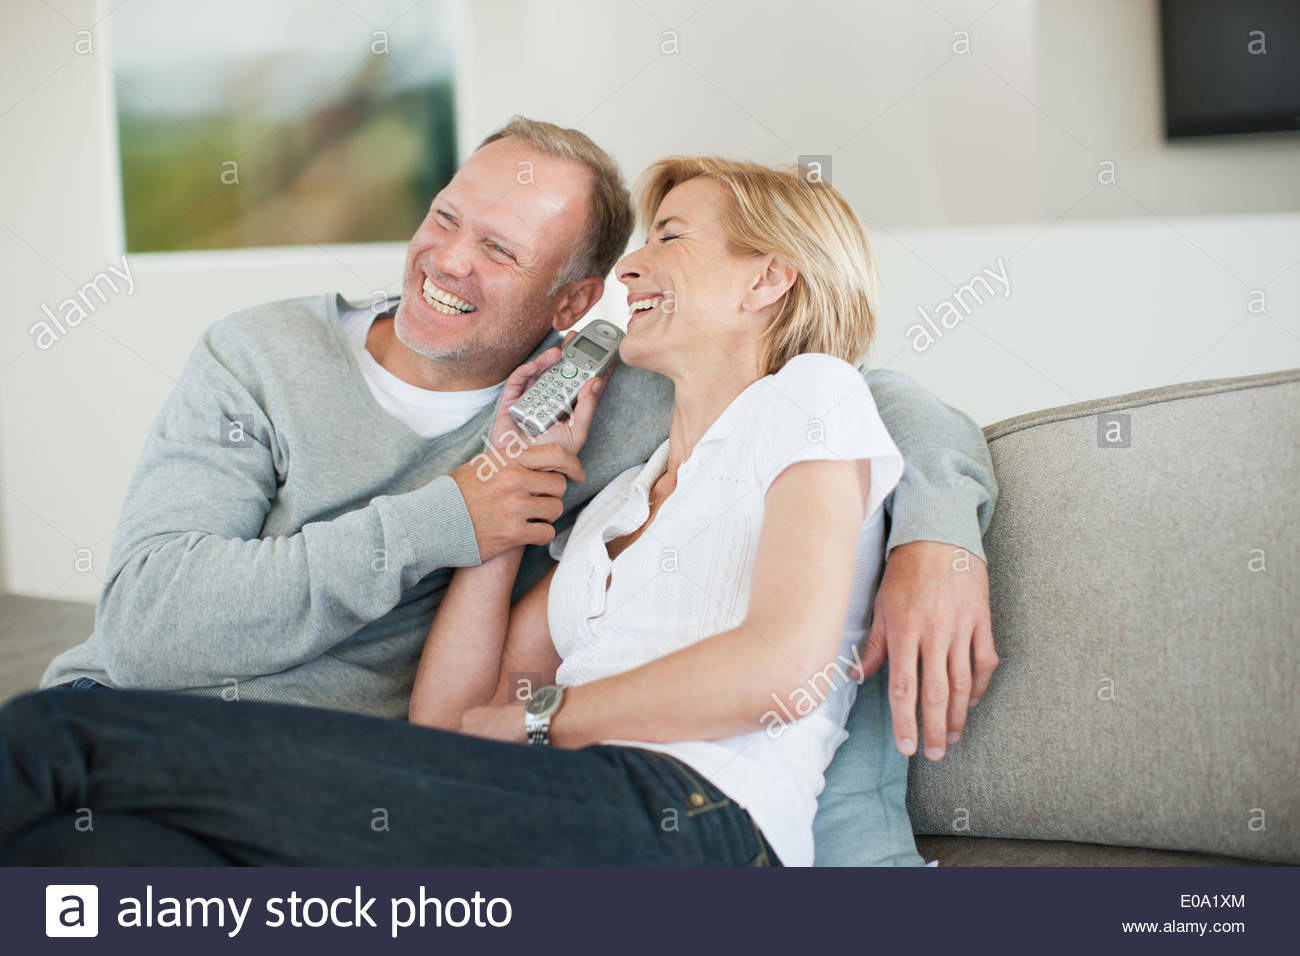 Couple listening to cordless phone together - Stock Image